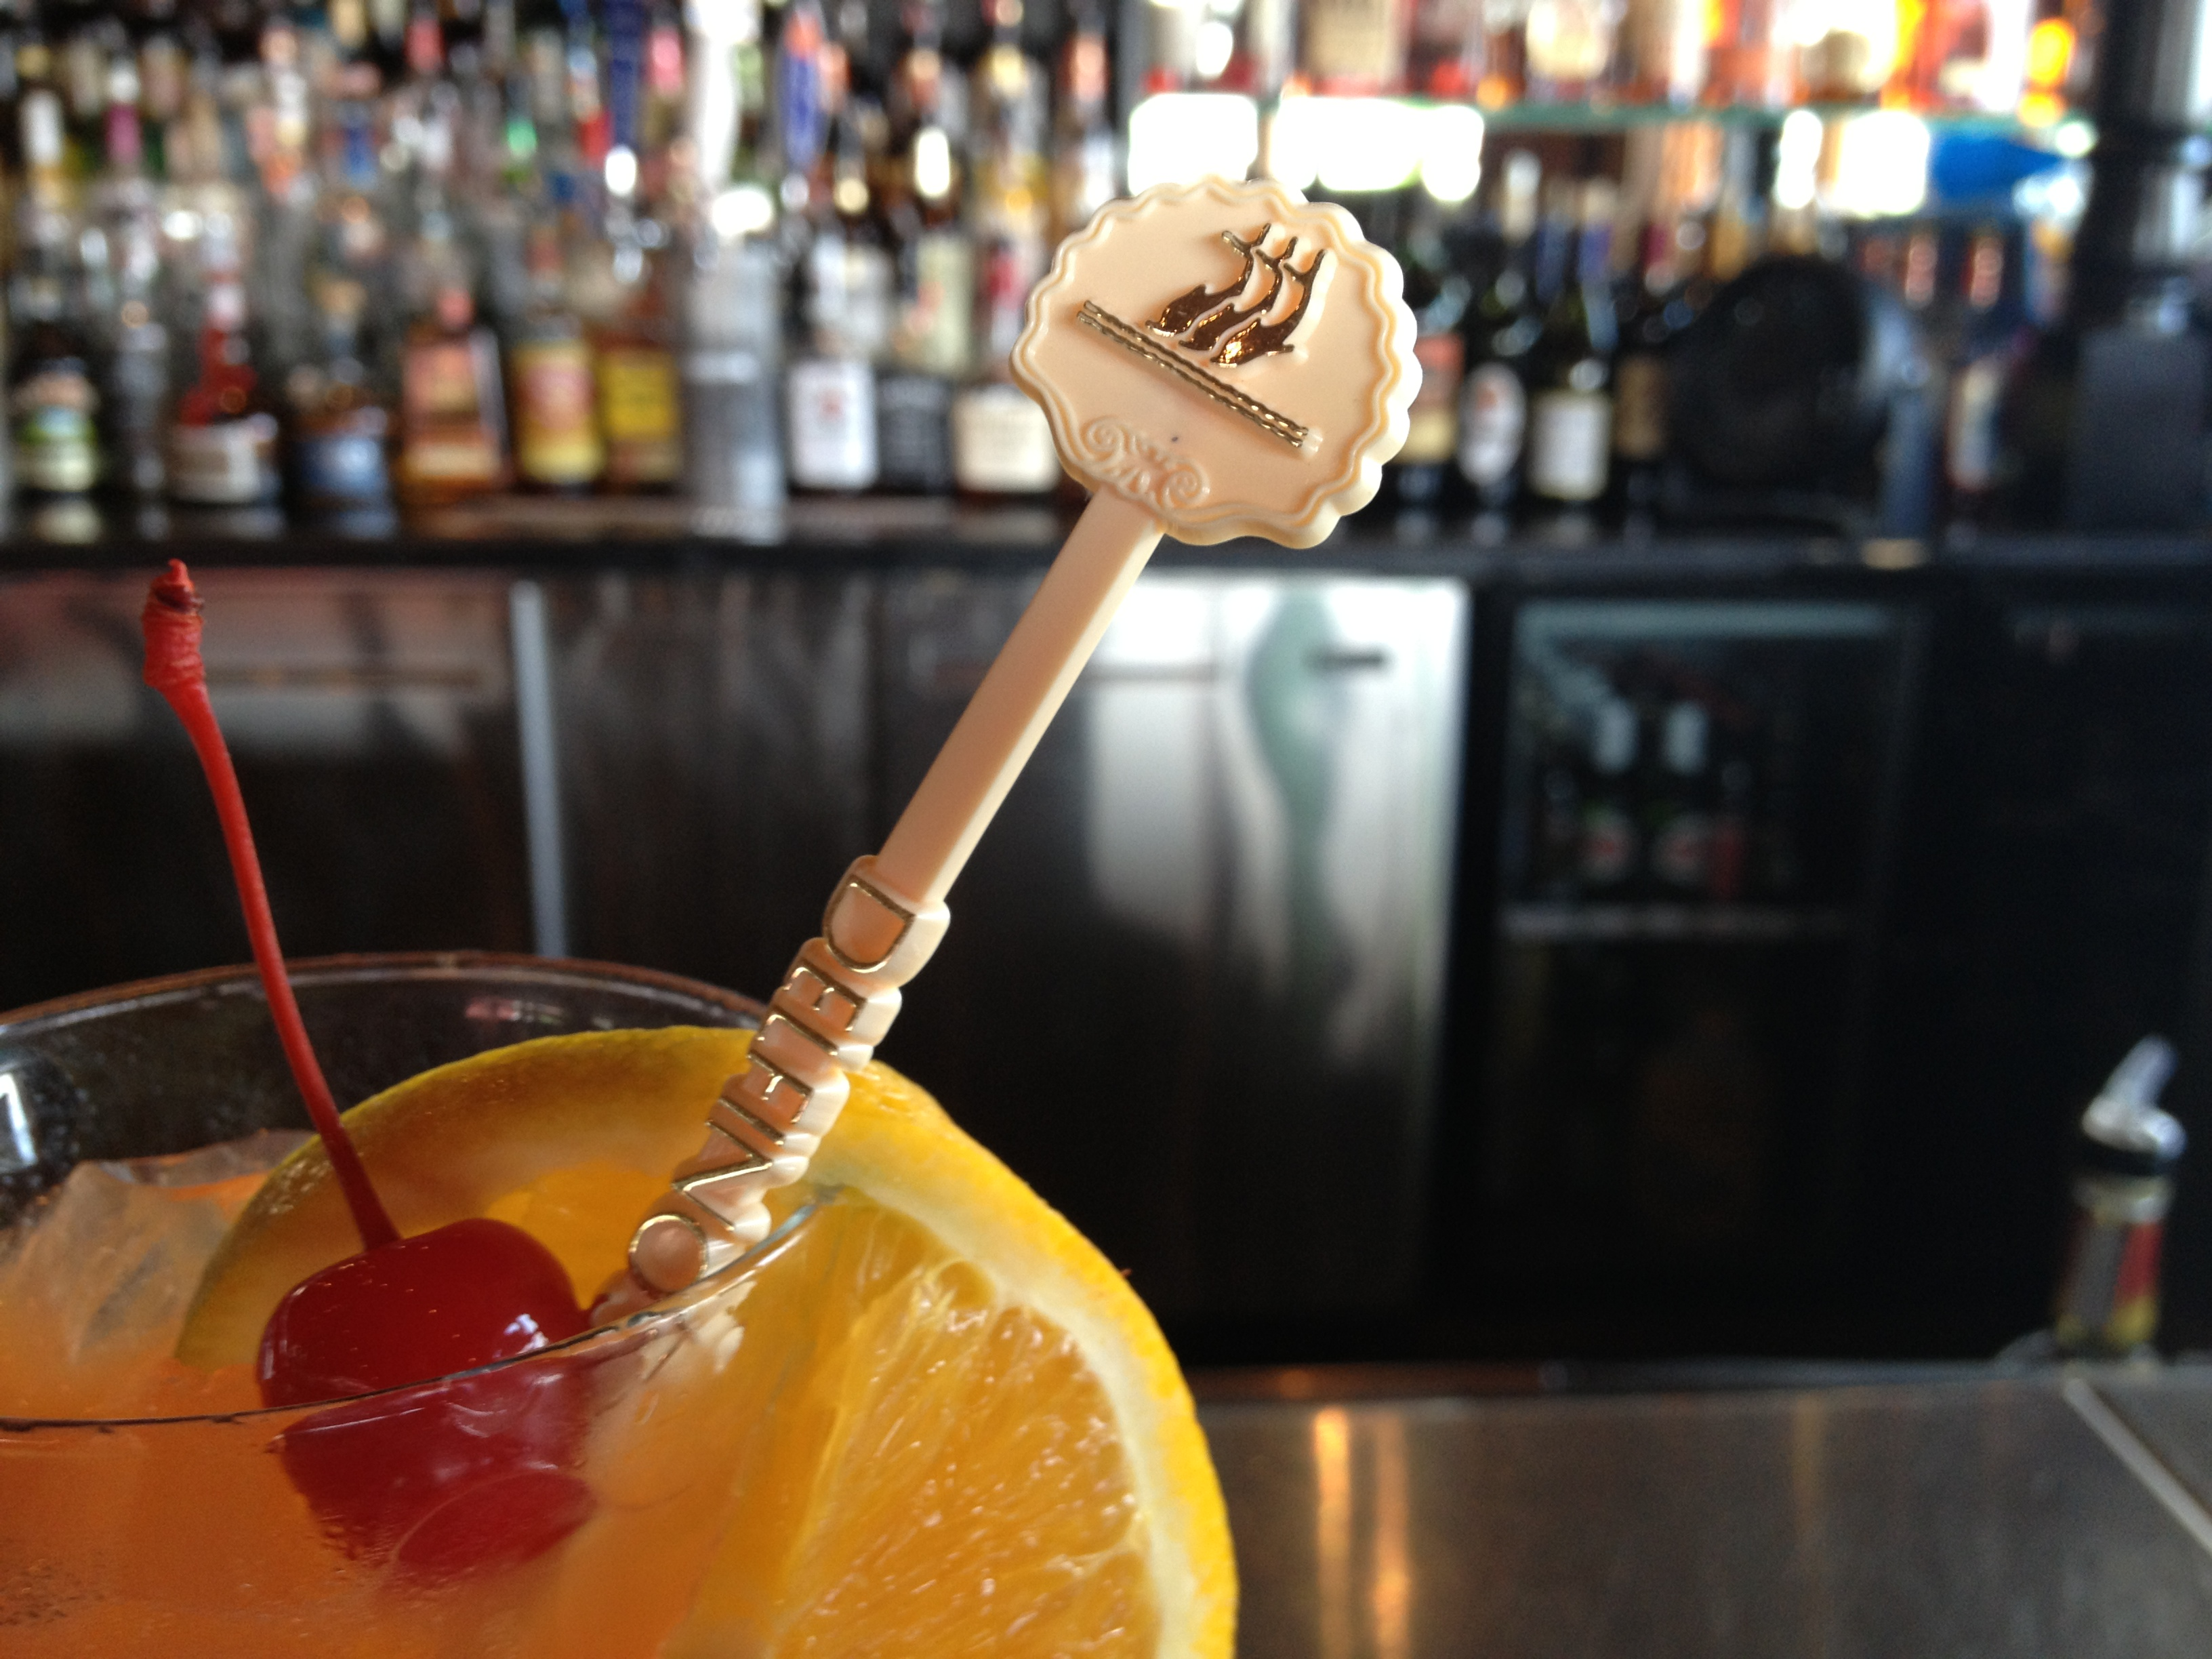 Custom Swizzle Sticks + Your Logo = Advertising Value For Your Brand